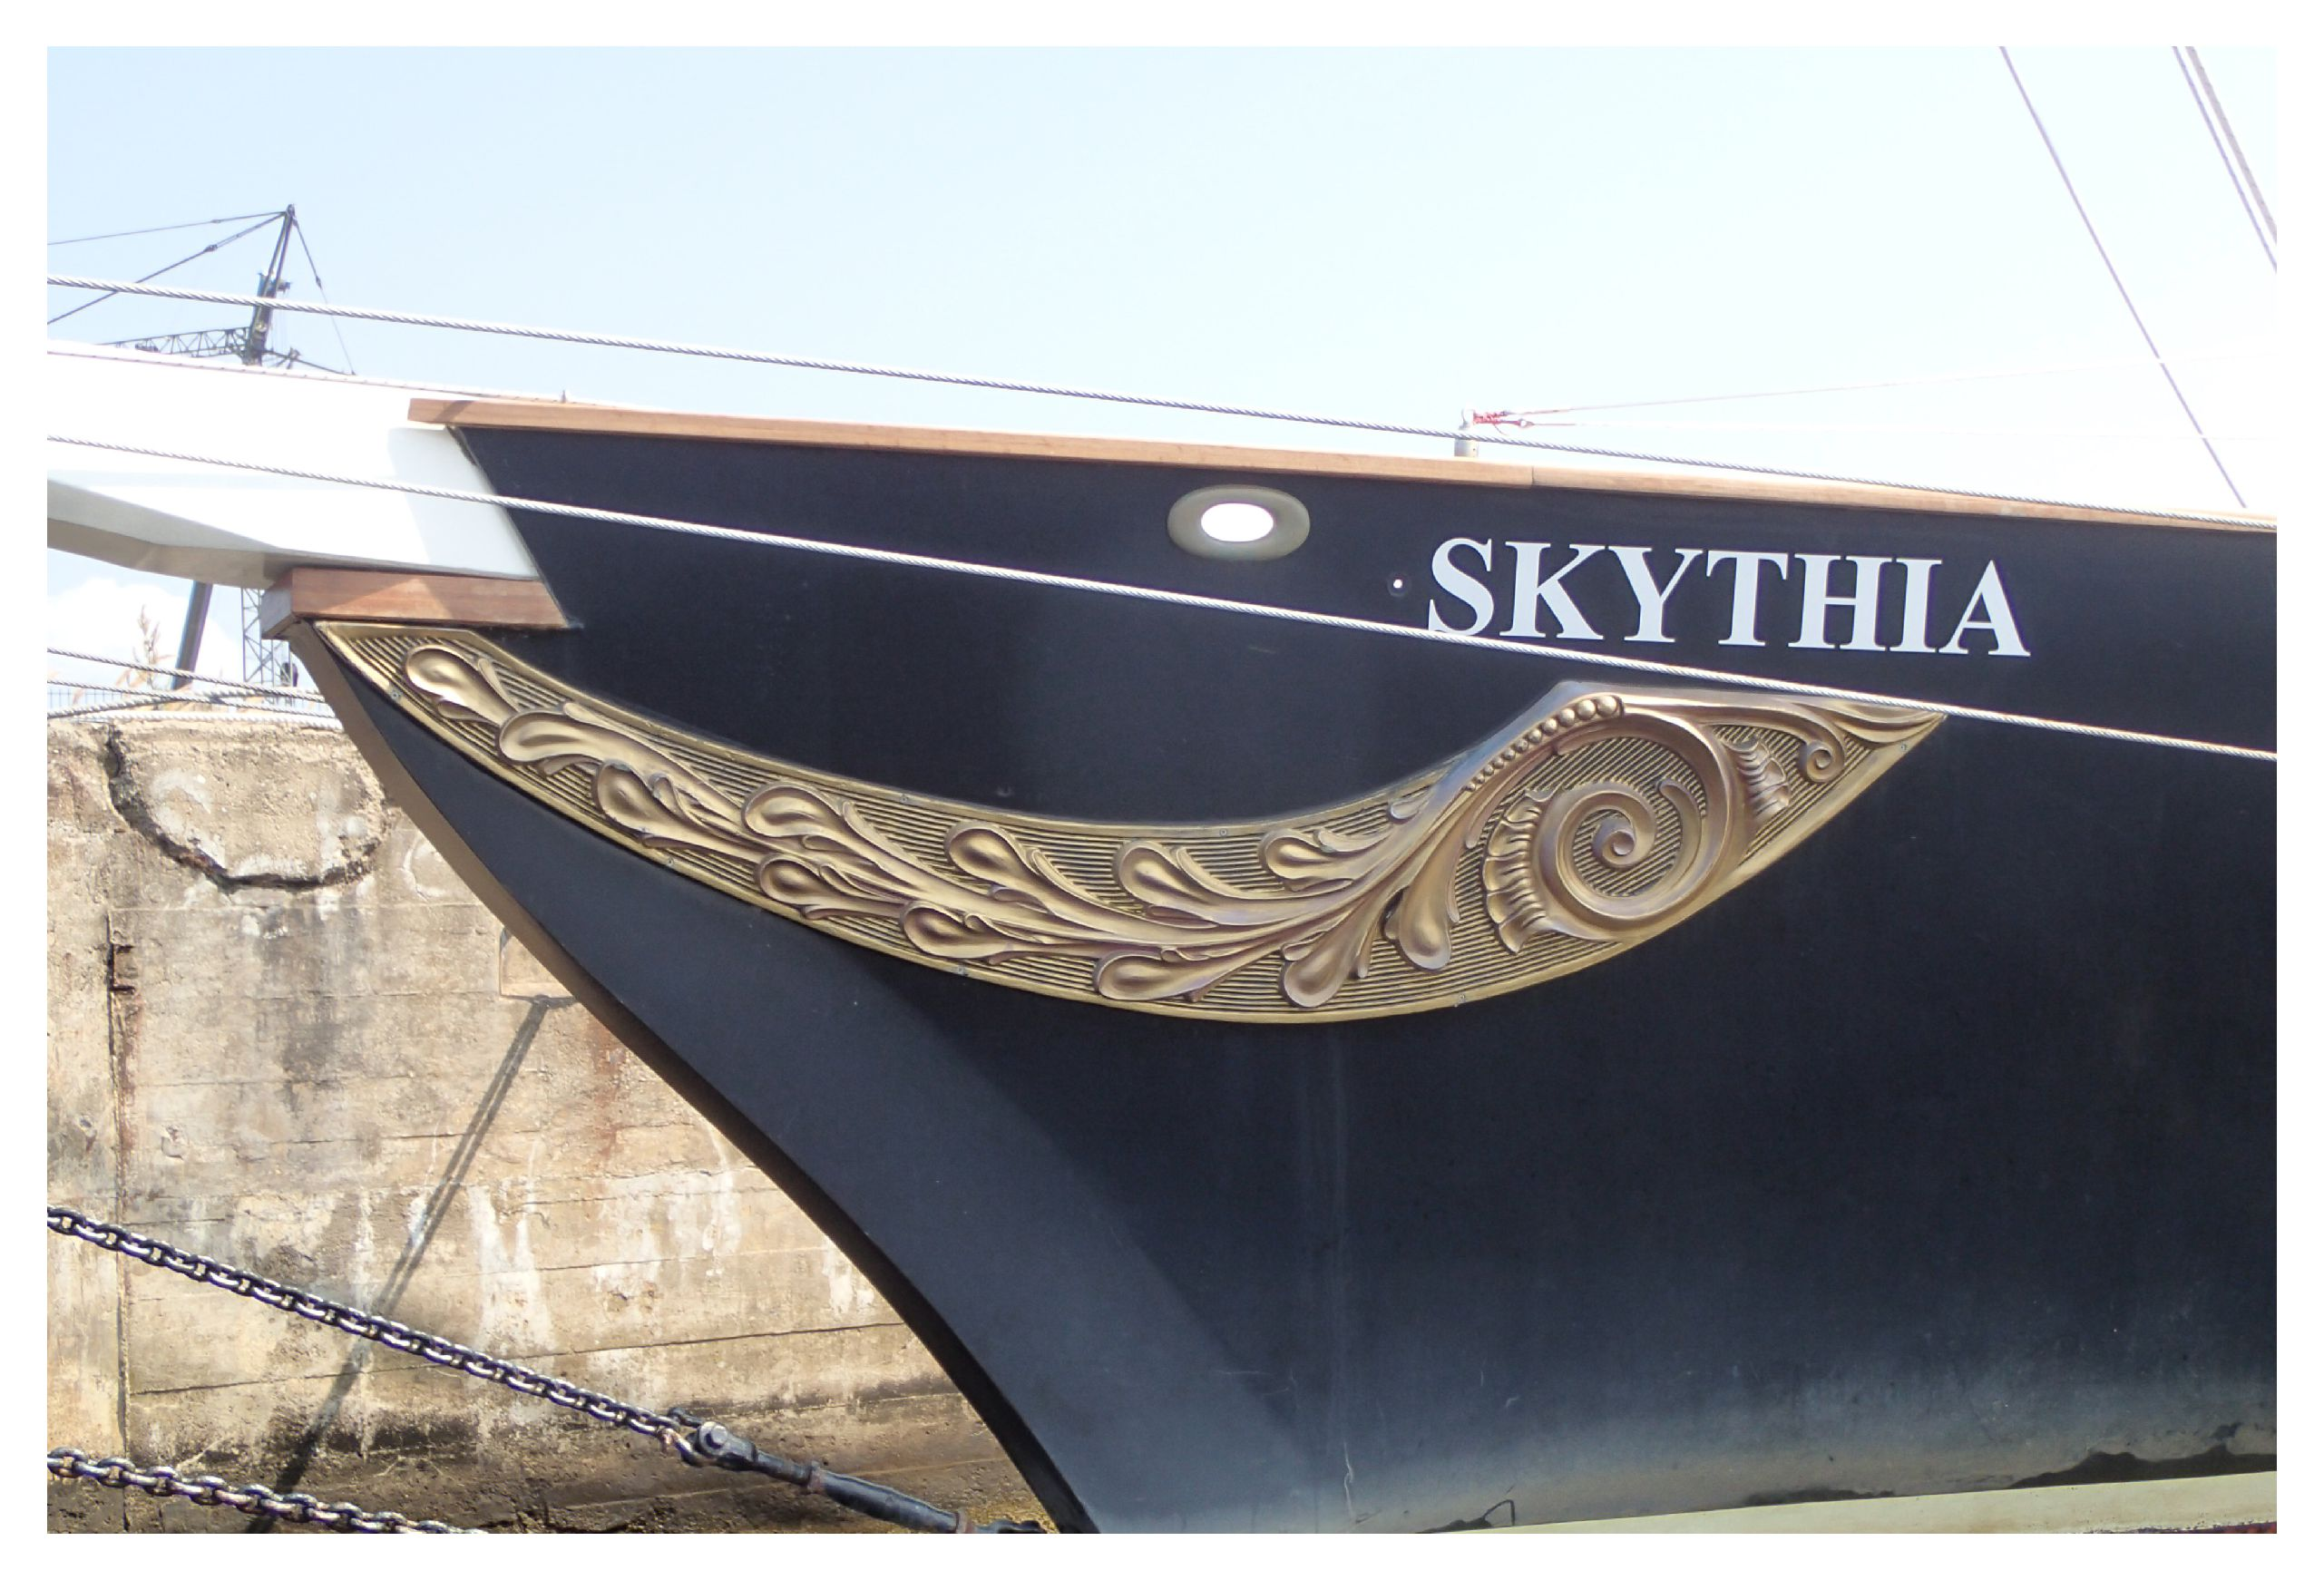 SKYTHIA in Rostock